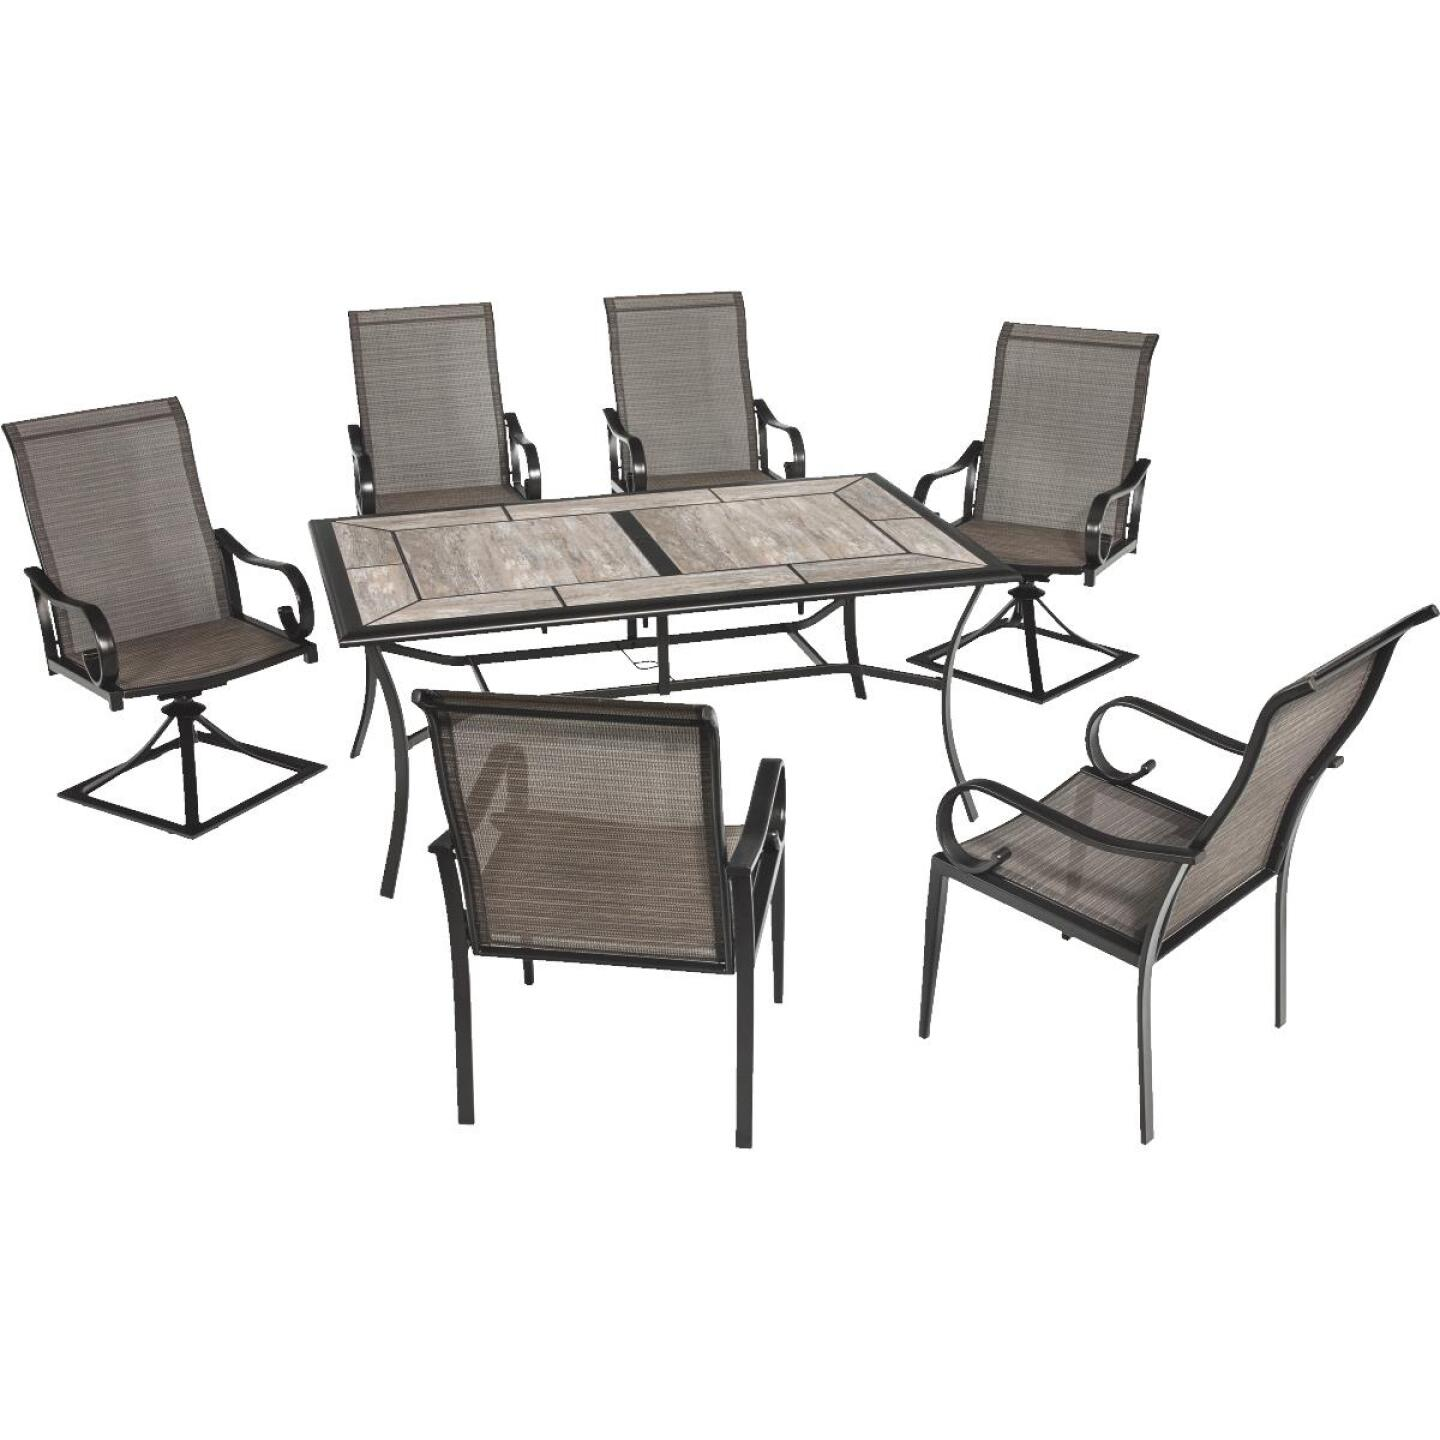 Outdoor Expressions Berkshire 7-Piece Dining Set Image 196